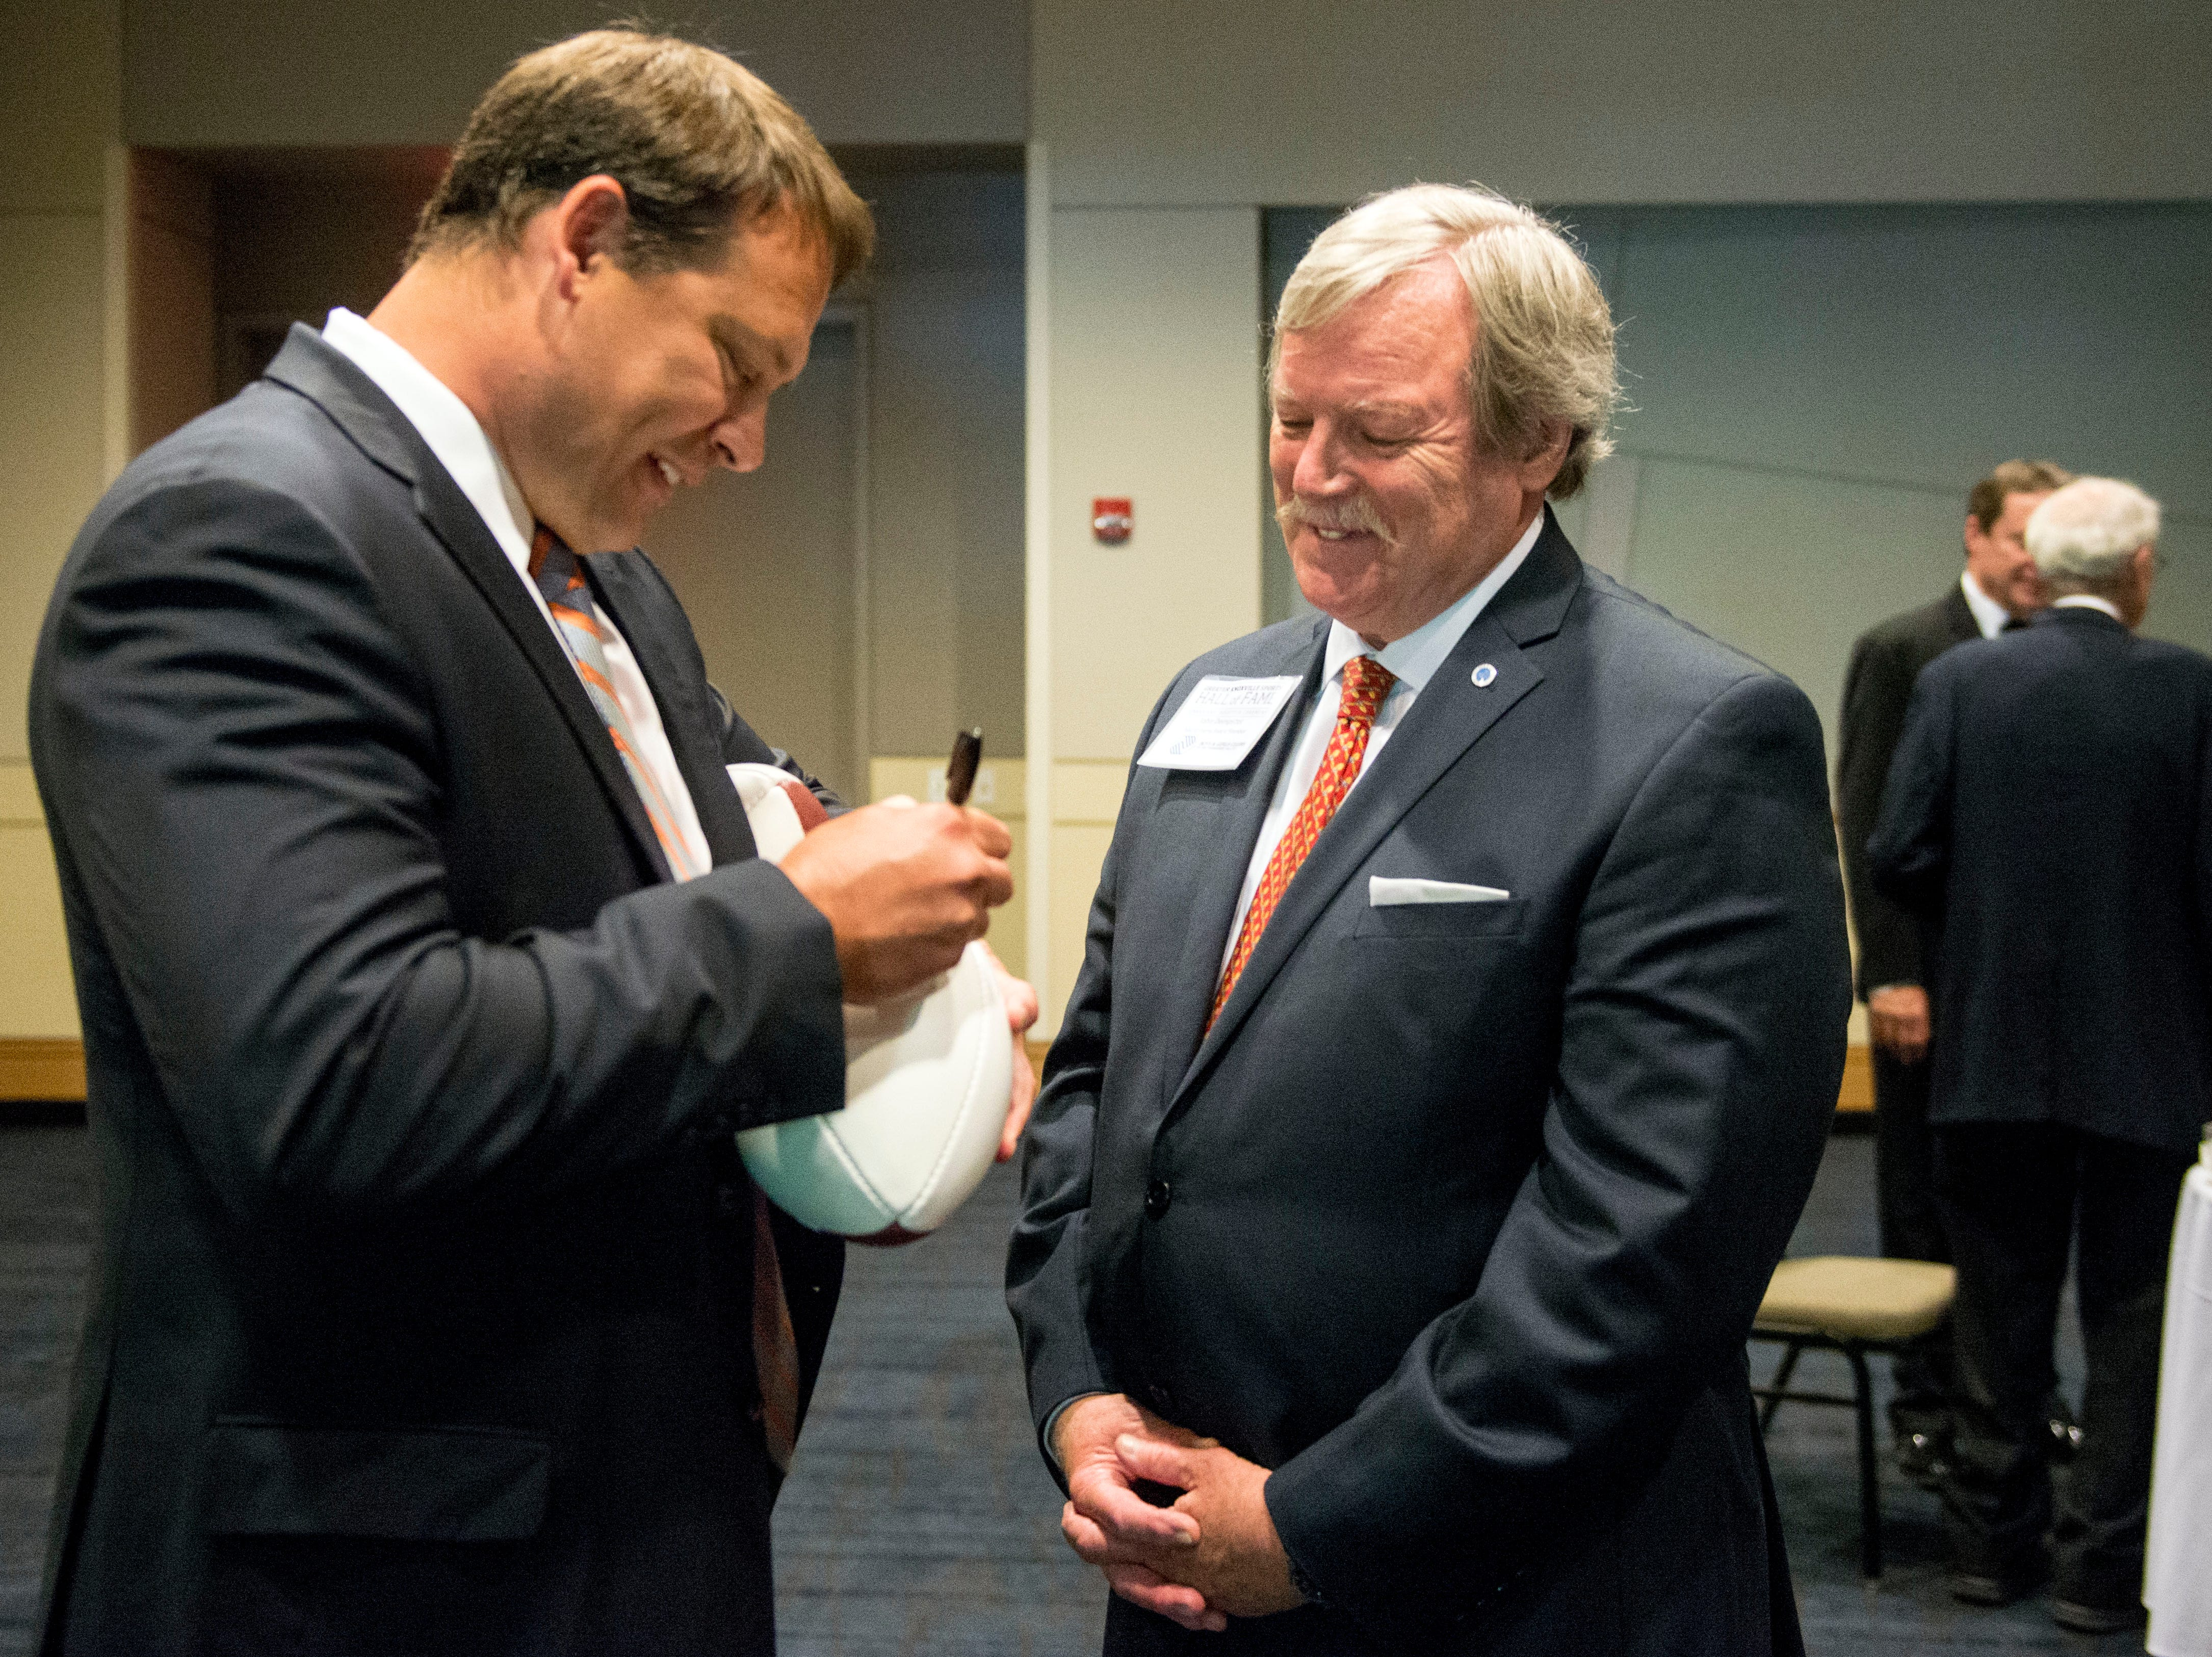 Former Tennessee quarterback and North Carolina congressman Heath Shuler signs a football for John Dempster during a reception before the Greater Knoxville Sports Hall of Fame Dinner and Induction Ceremony at the Knoxville Convention Center on Tuesday, July 26, 2016. (SAUL YOUNG/NEWS SENTINEL)